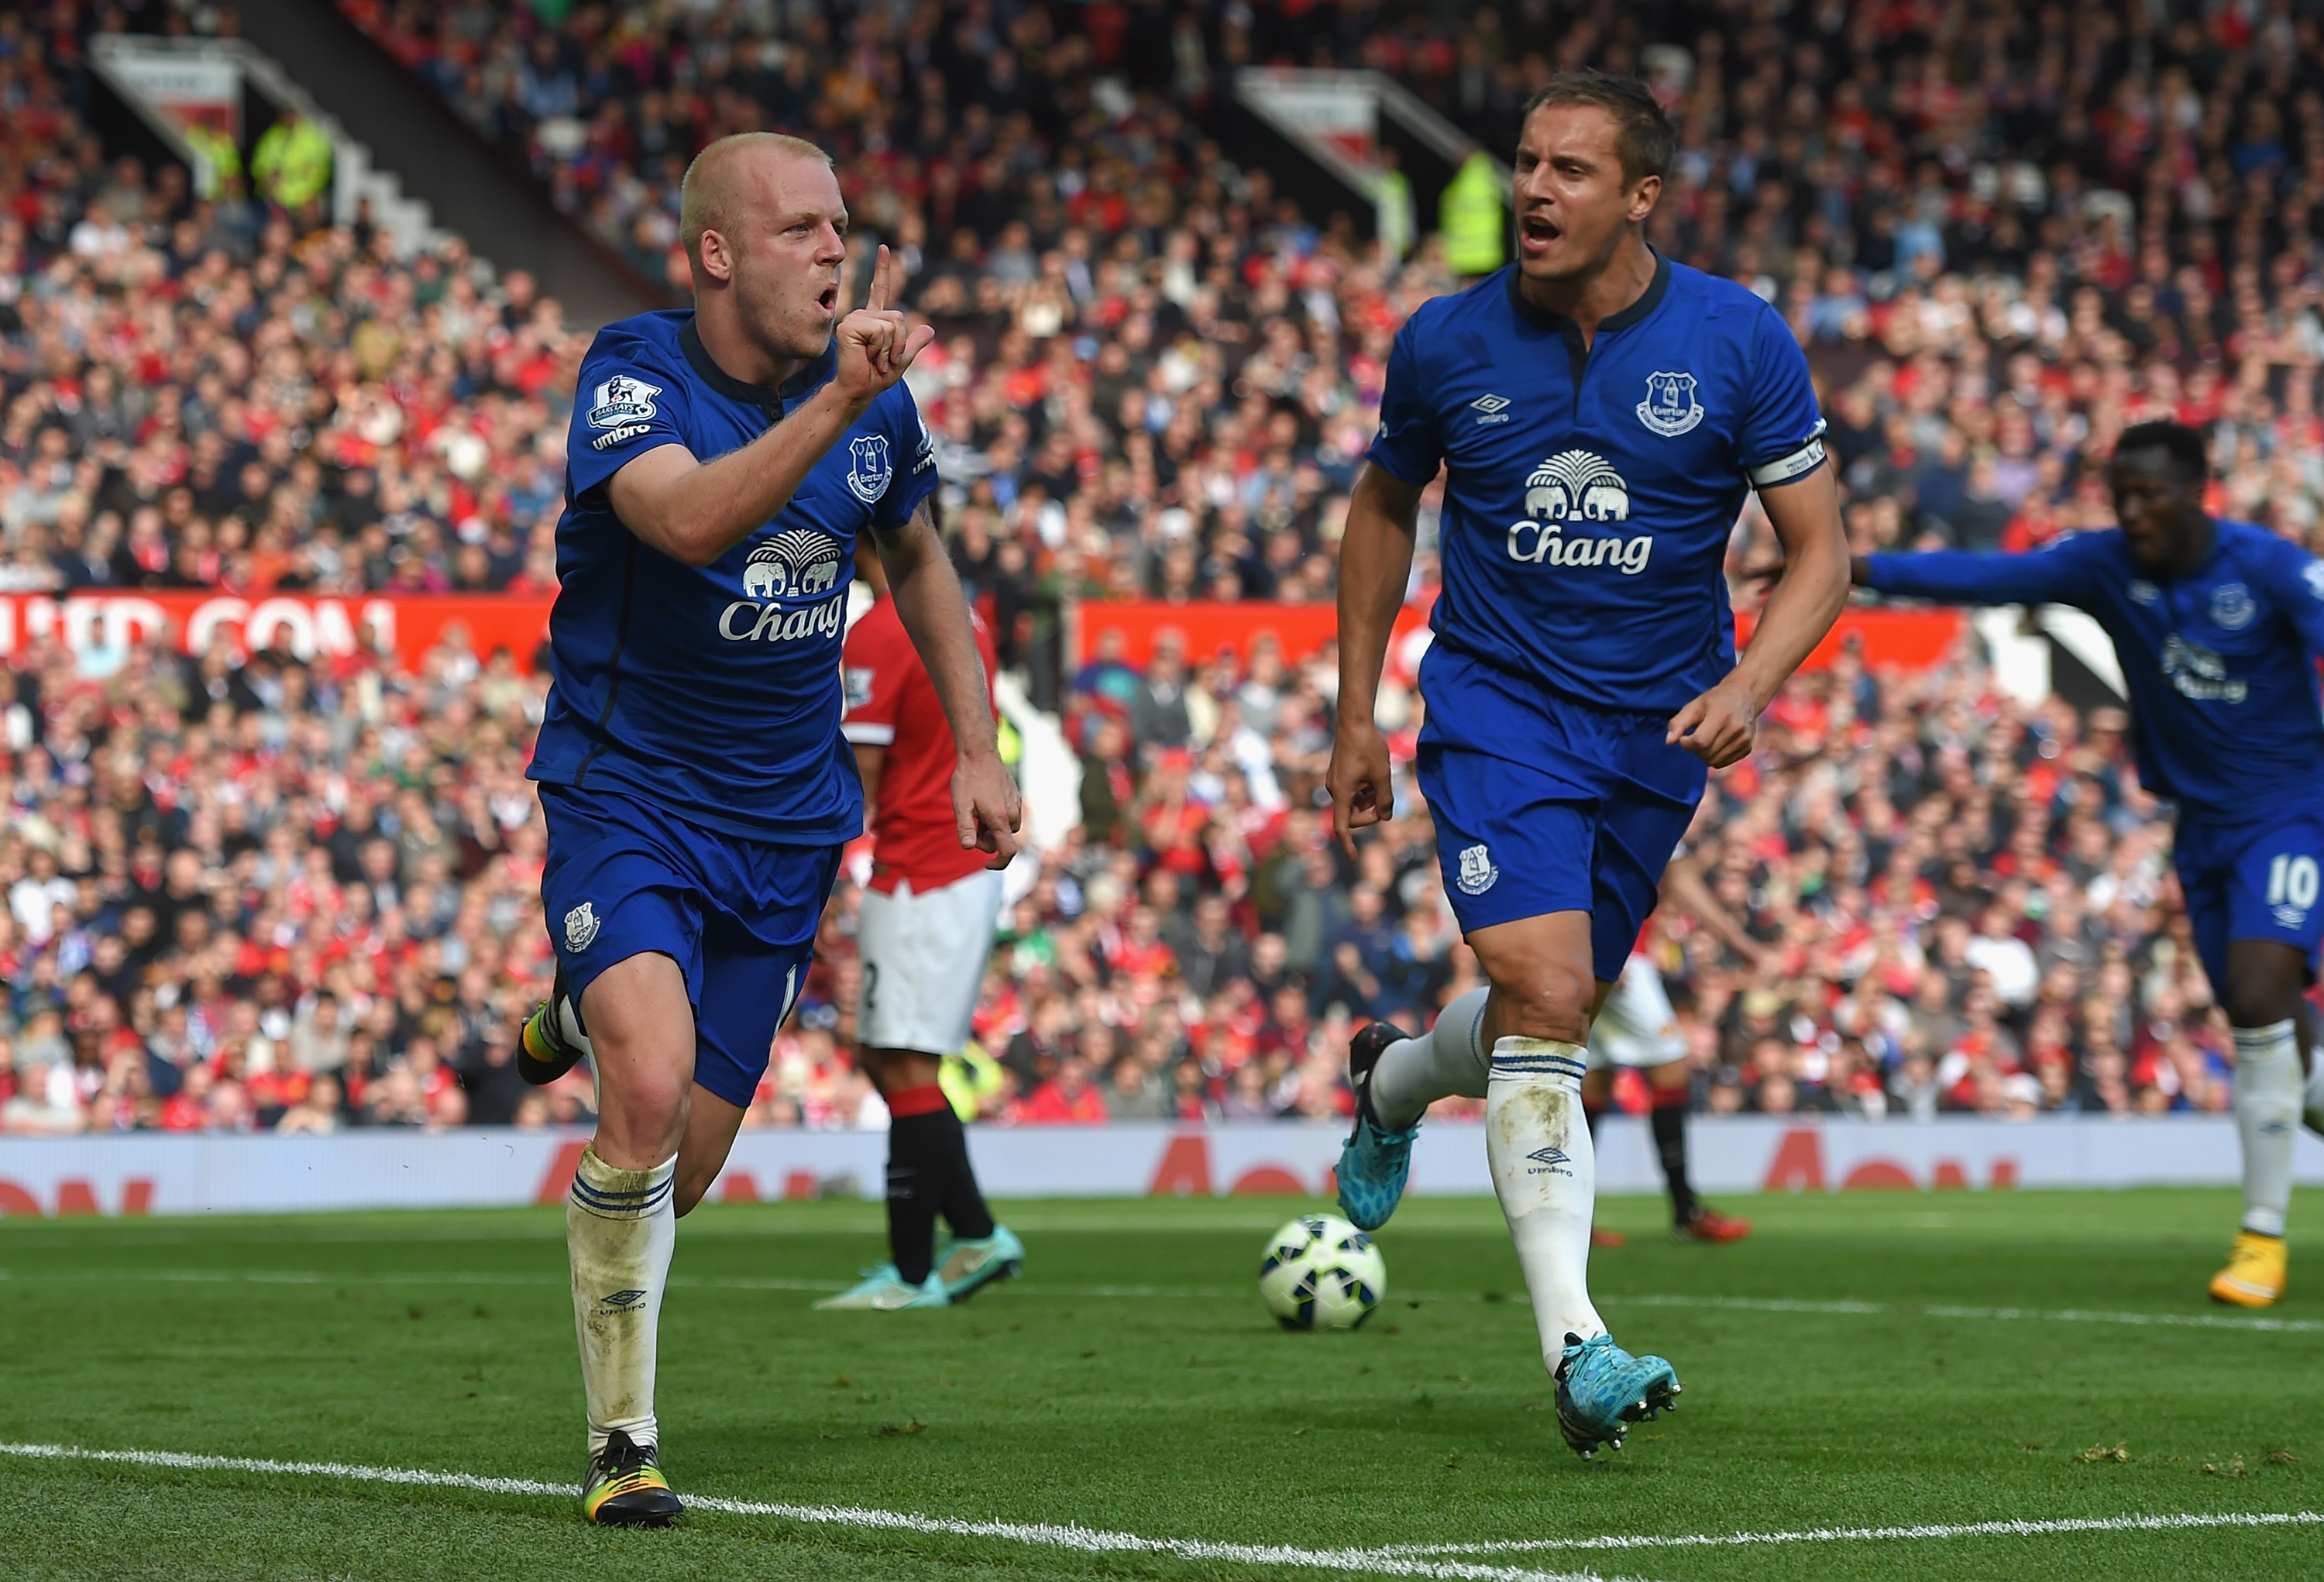 Steven Naismith celebrates his fourth Premier League goal of the season in a match against Manchester United.